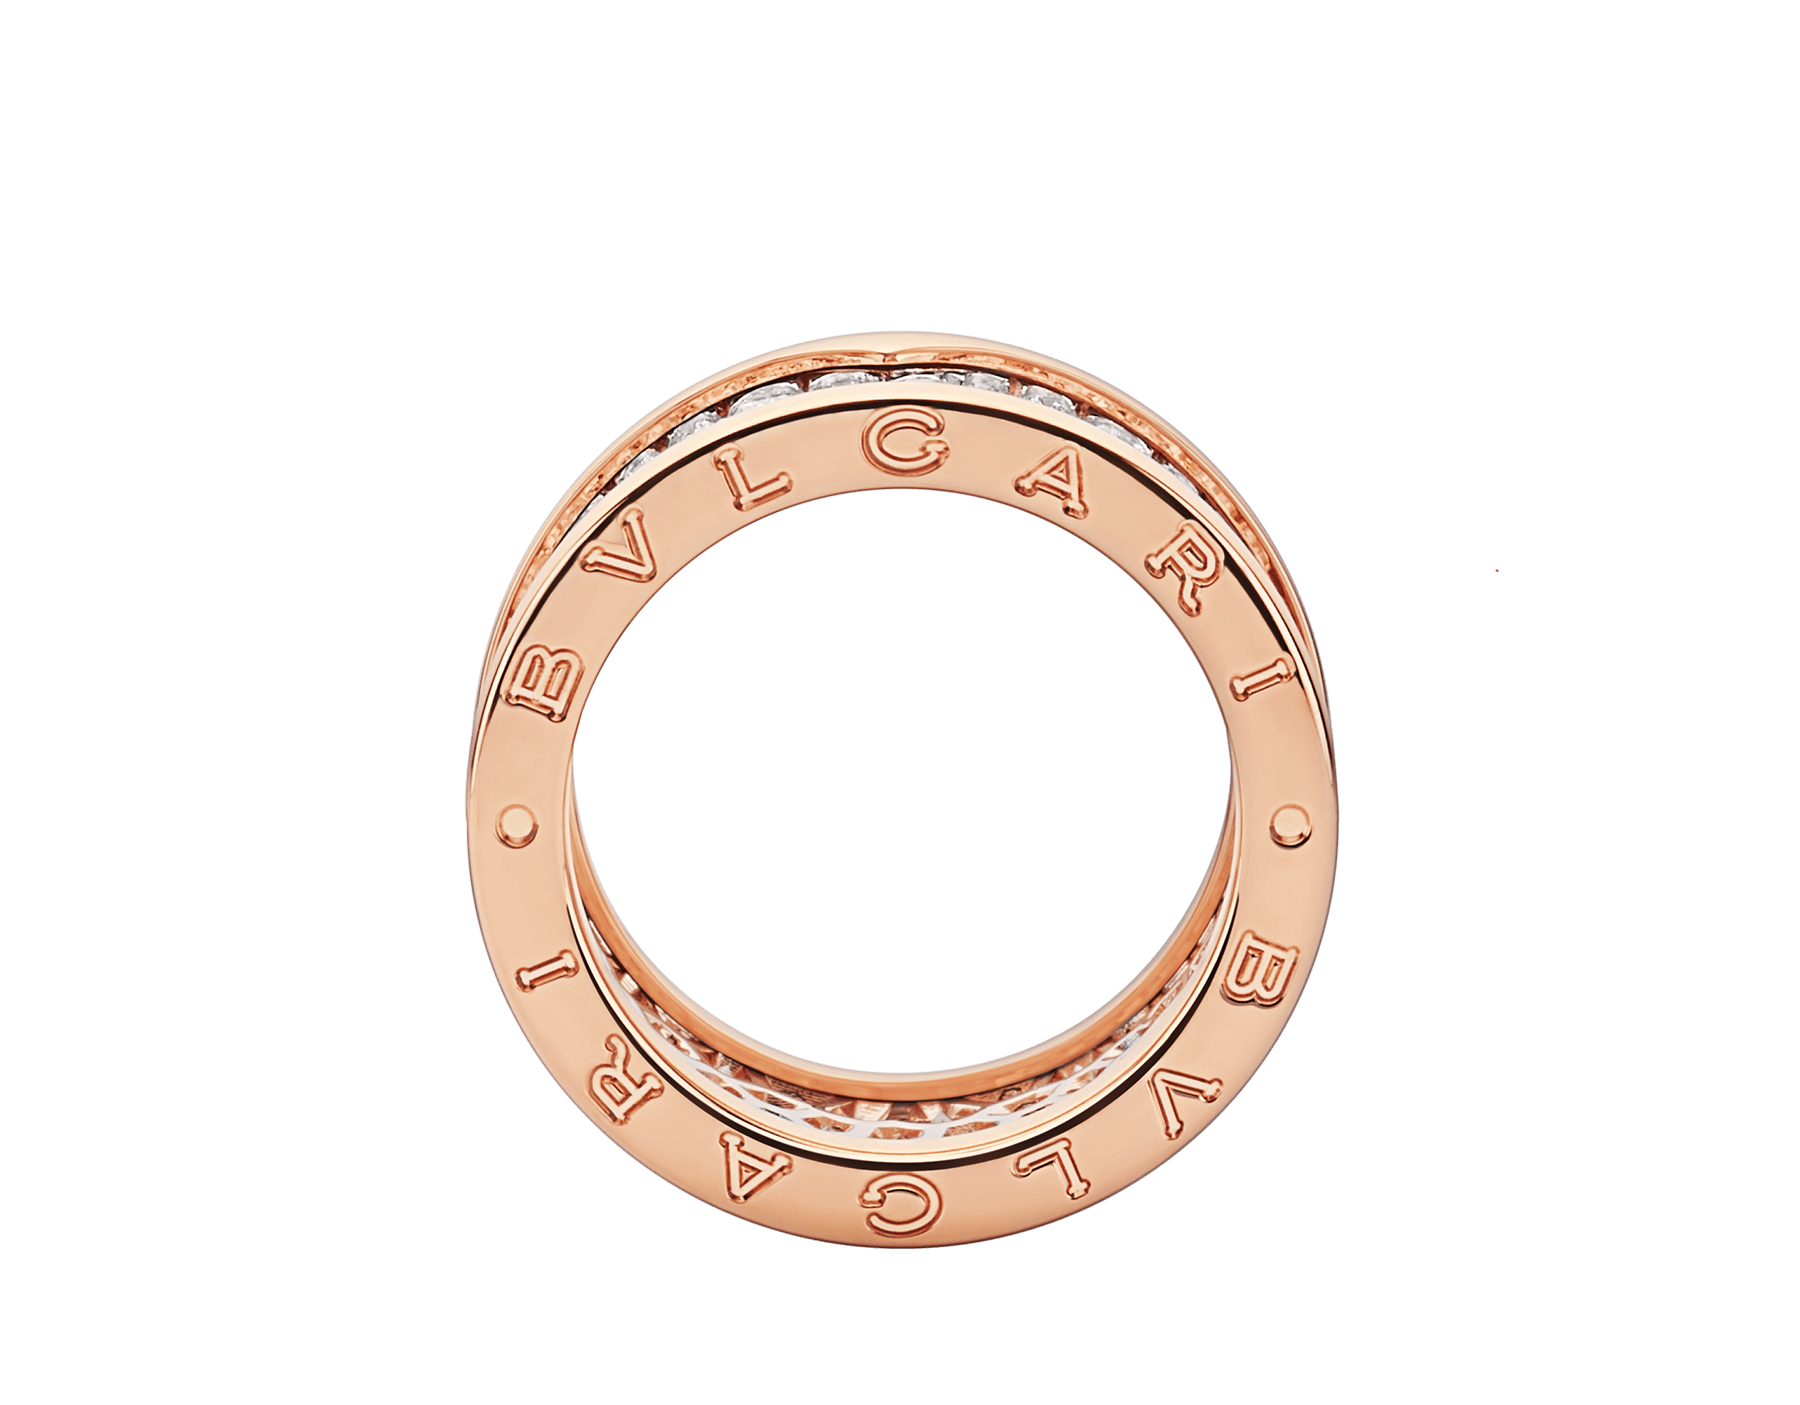 B.zero1 ring in 18 kt rose gold, set with pavé diamonds on the spiral. AN855553 image 2